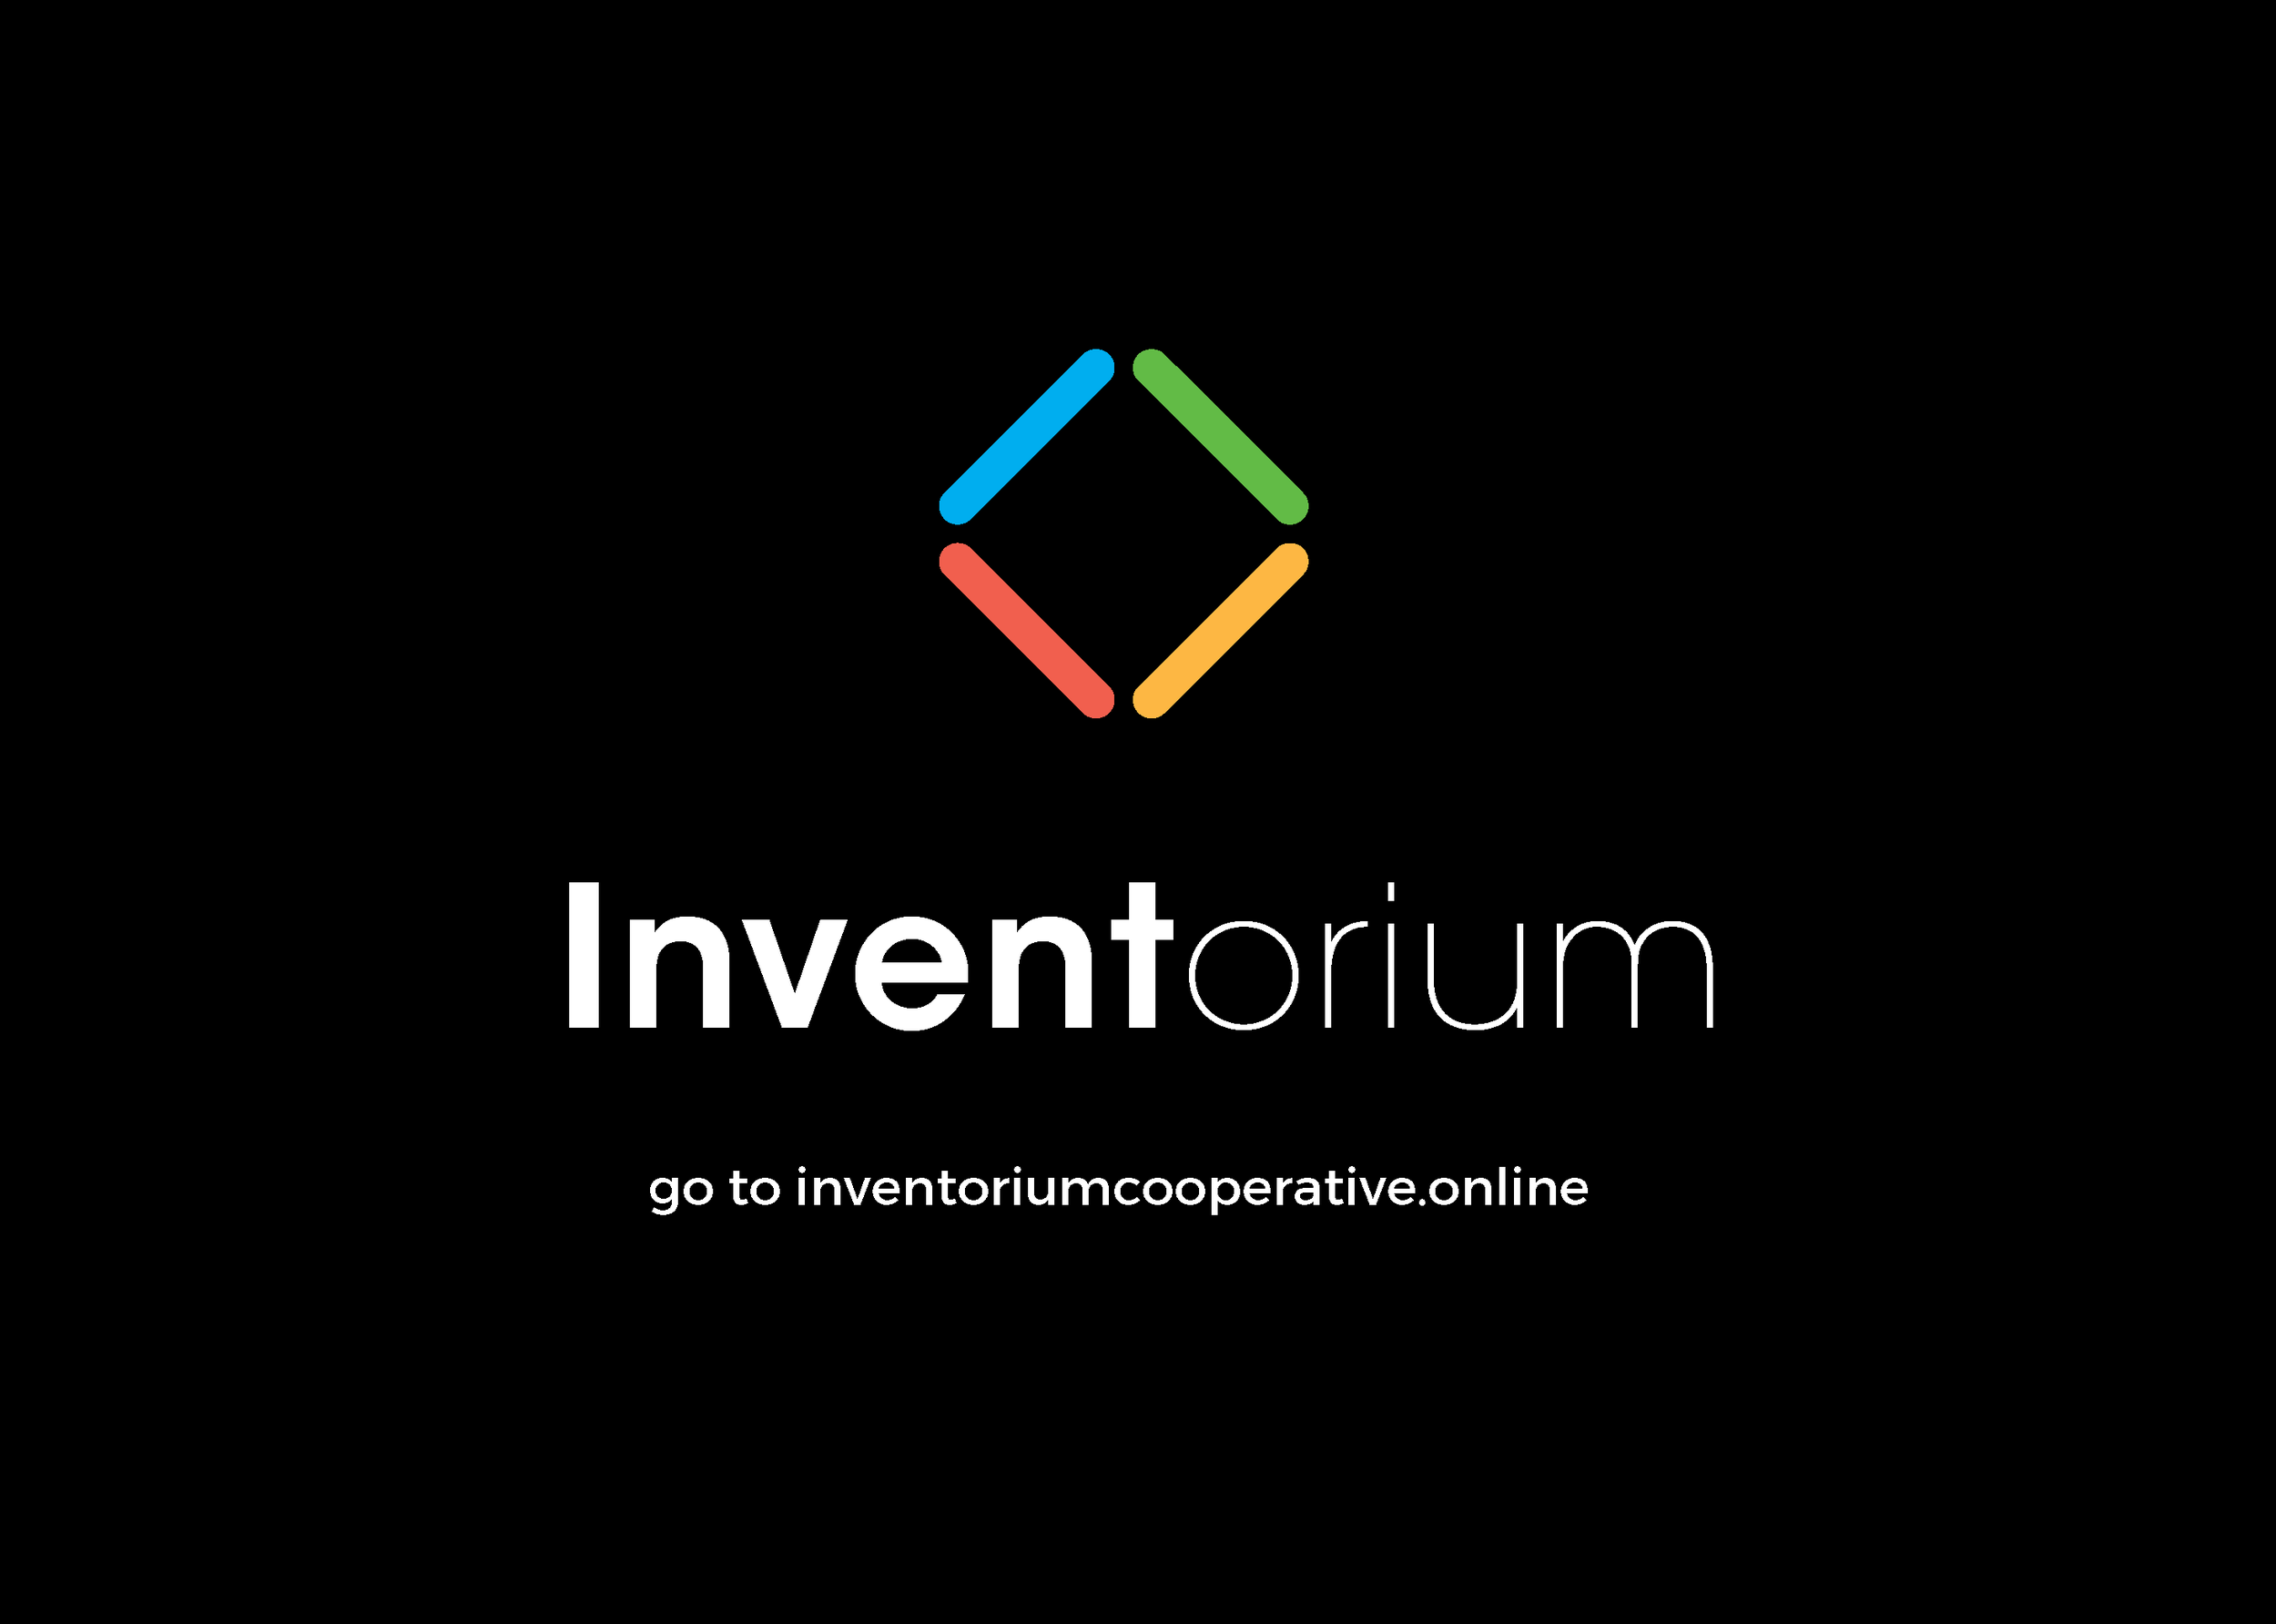 Inventorium Australia Co-operative Limited - We offer membership to the Inventorium Co-operative to schools and education providers in Australia.  The members own the Inventorium instance and operate as a not-for-profit organisation, reinvesting any surplus from membership fees in further developing the curriuclum and system for the specific needs of the Australian Education System.